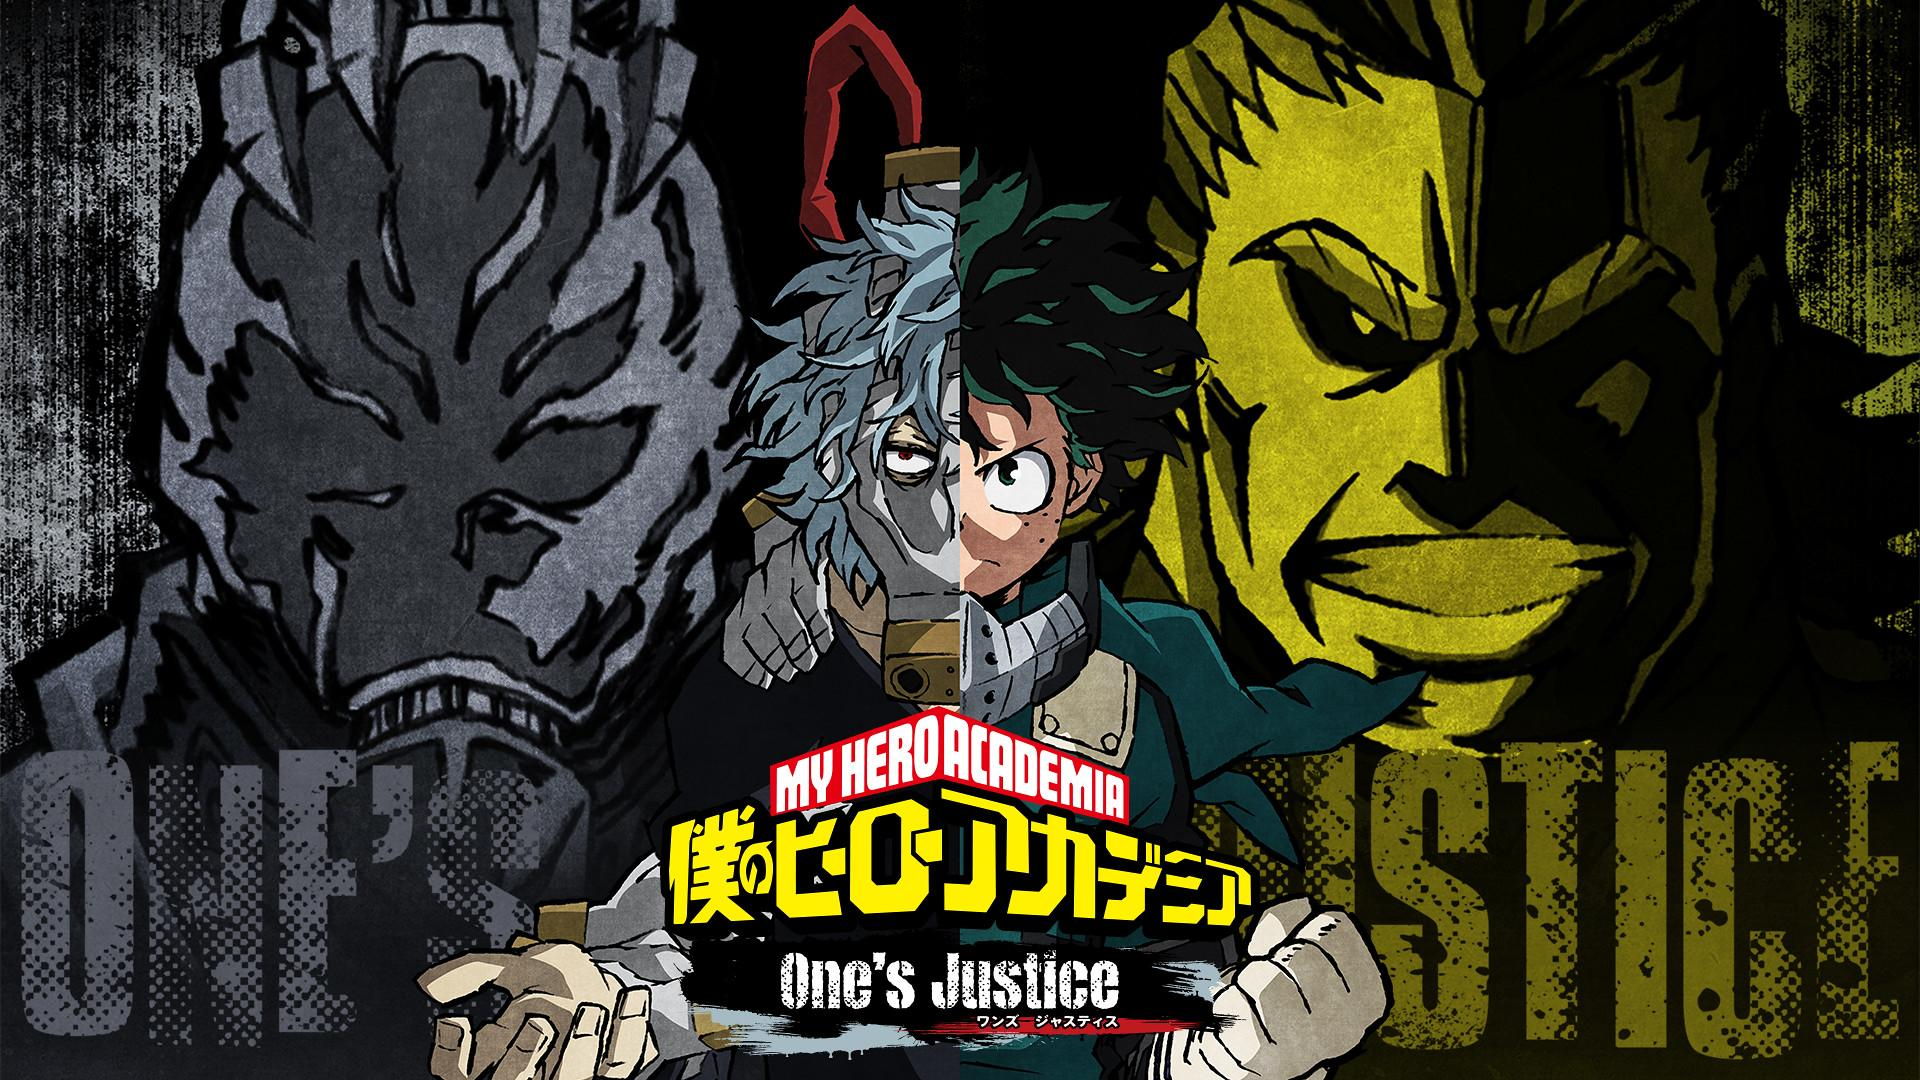 My Hero Academia Chapter 305 Title Leaks, Spoilers and Summary